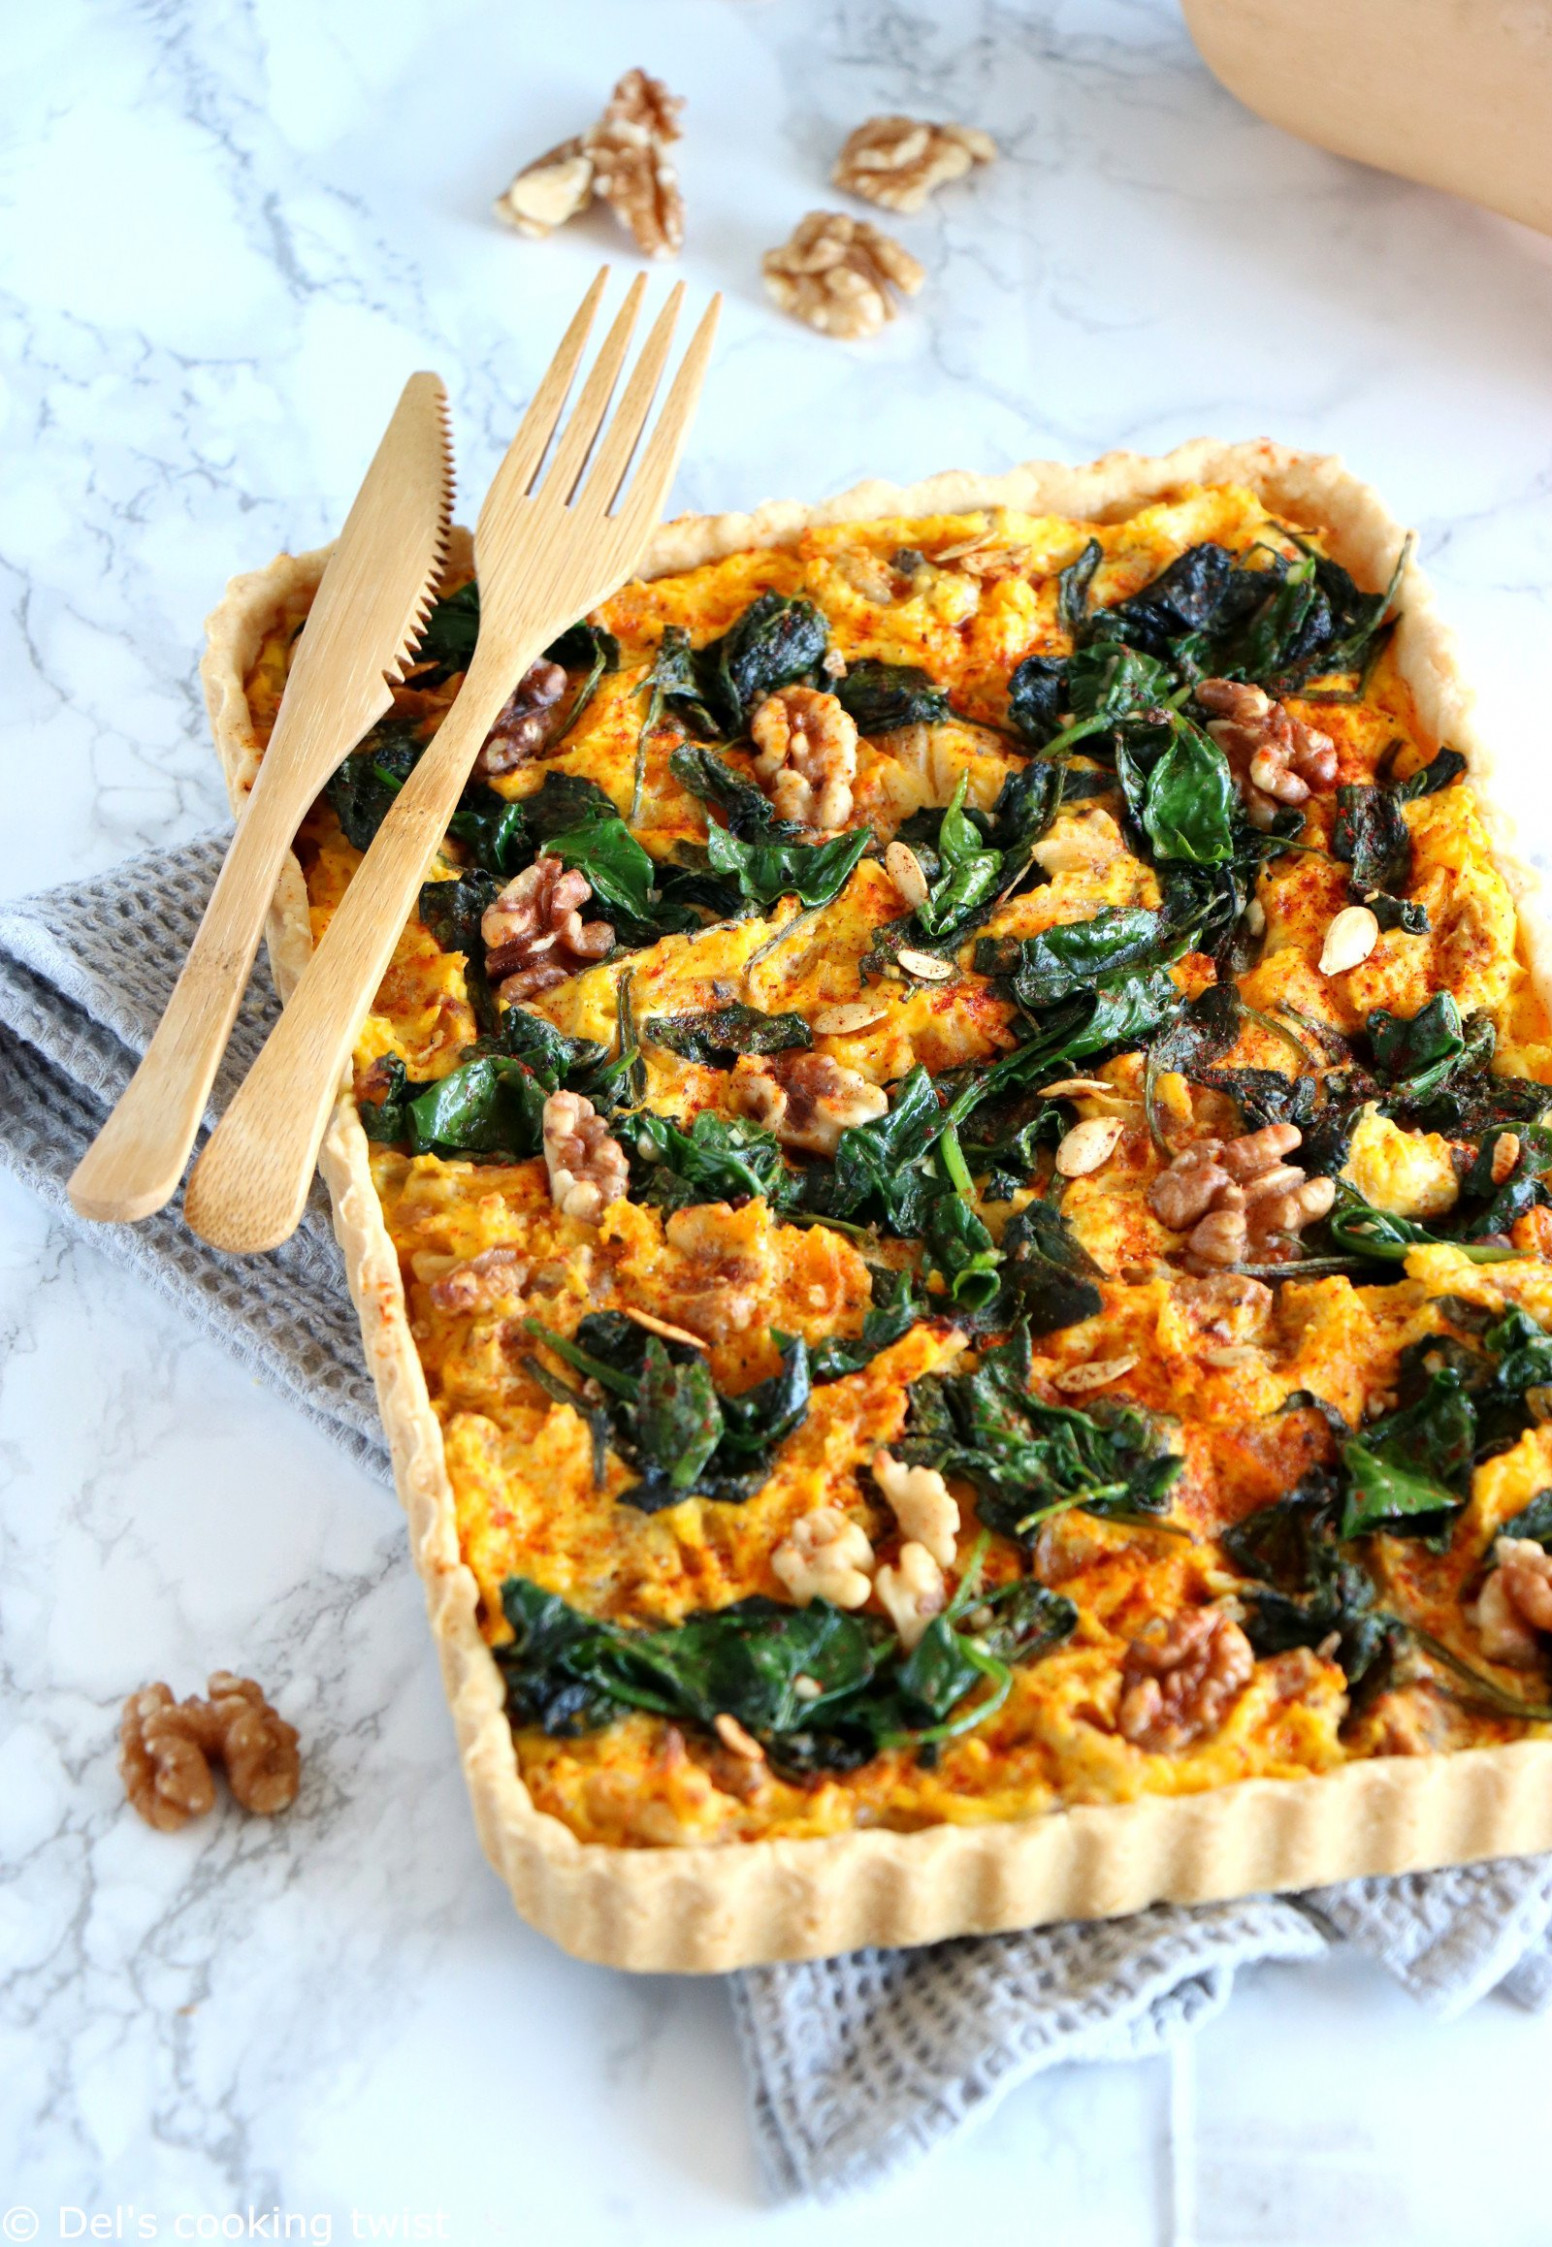 Pumpkin, Spinach And Goat Cheese Quiche – Del's Cooking Twist - Food Recipes Quiche